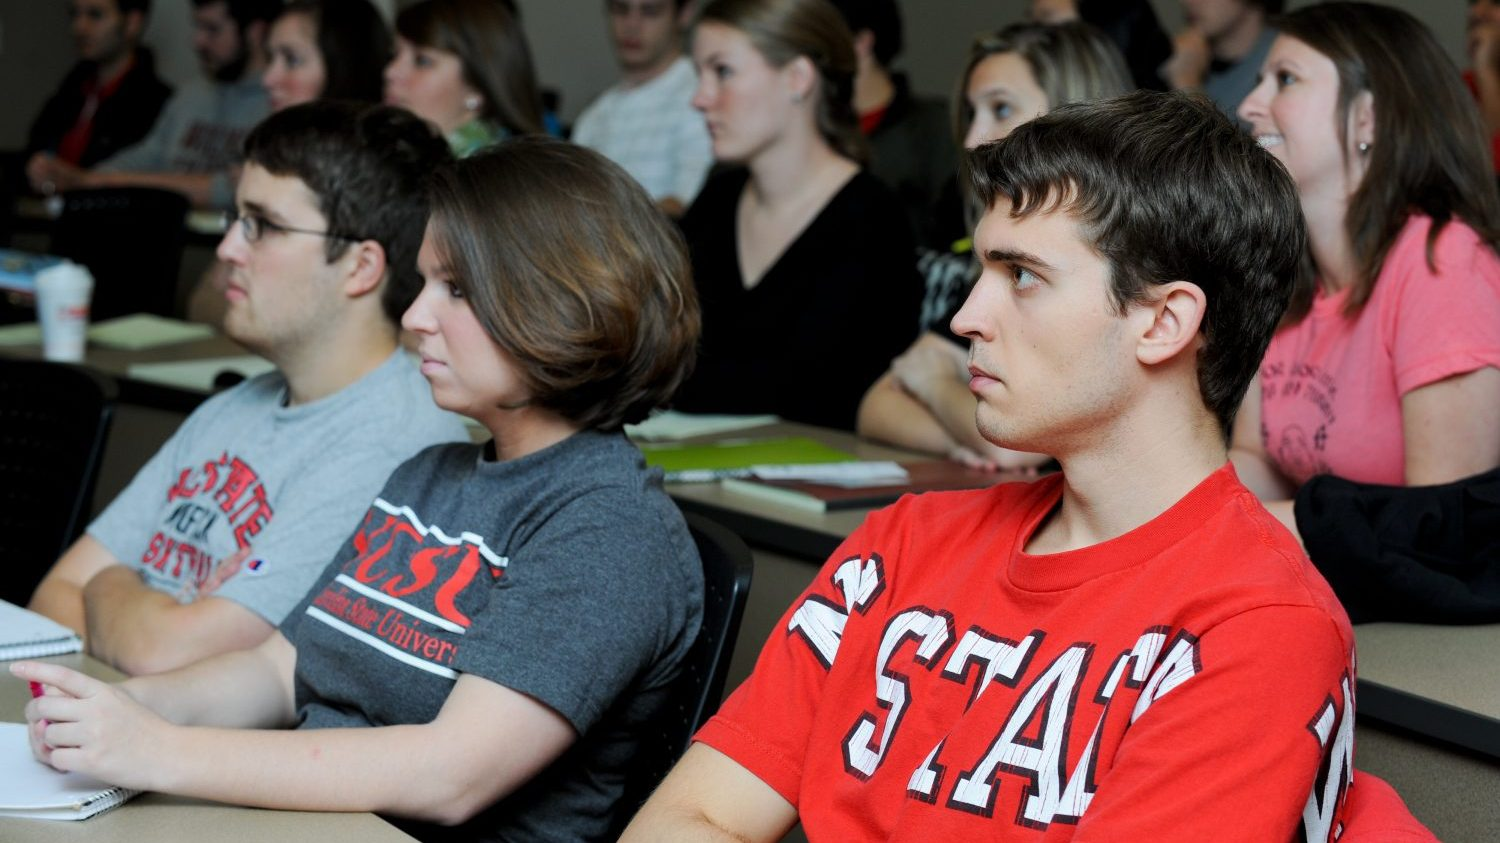 Students in a classroom at NCState